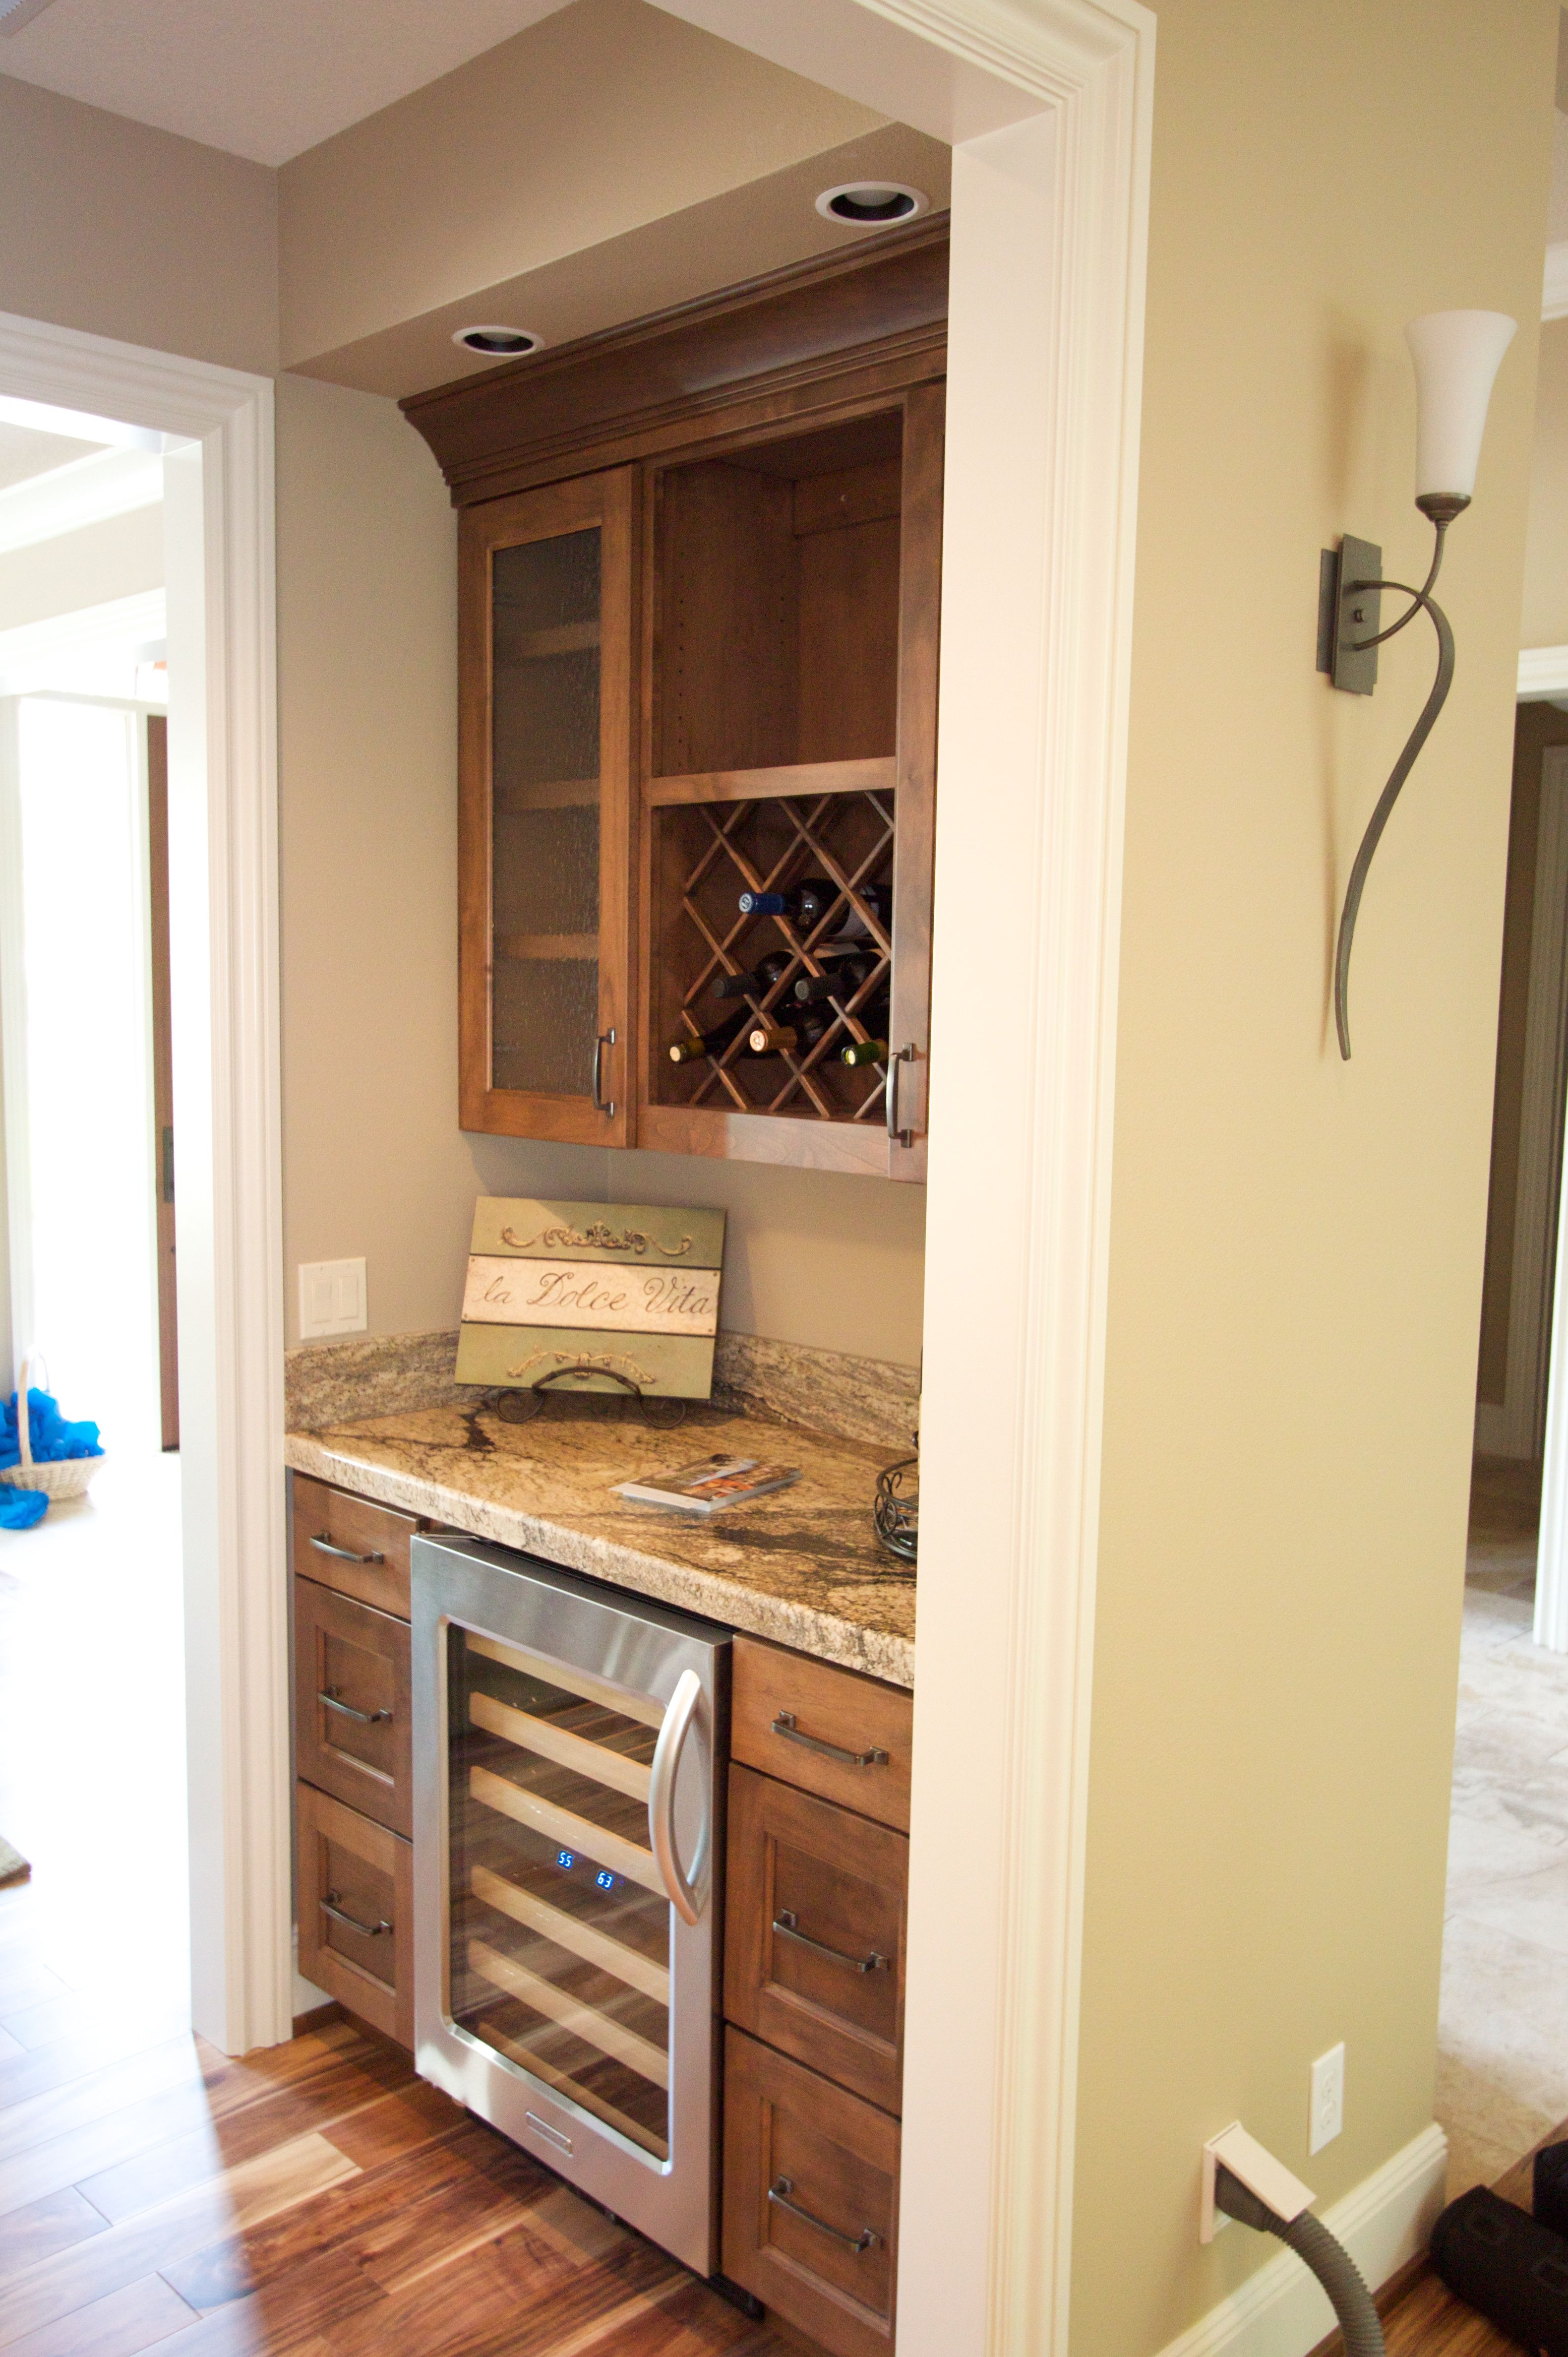 Butler s Pantry love the wine fridge and wine rack w white